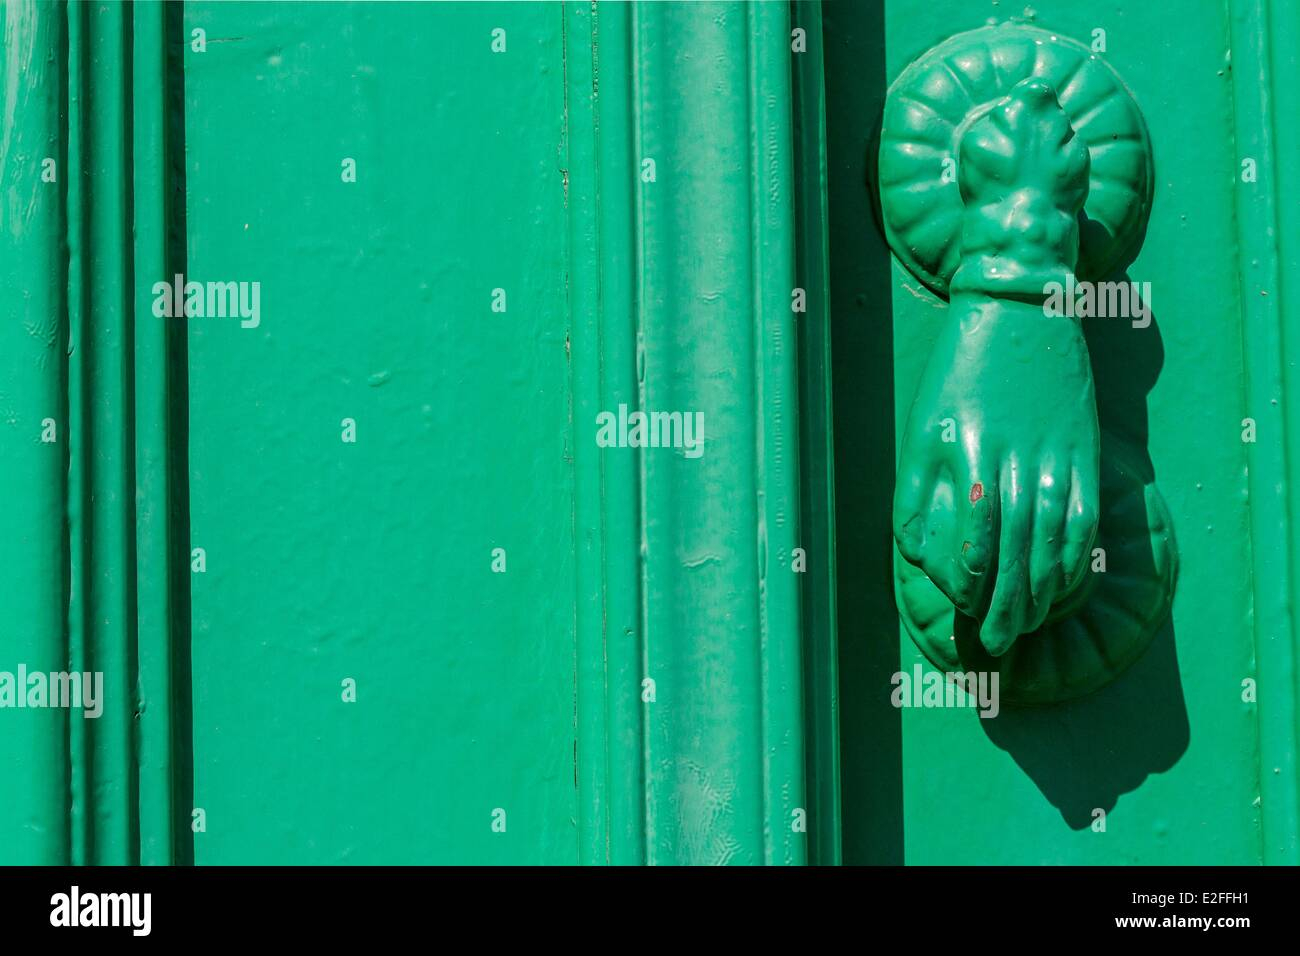 Cyprus, Larnaca district, Lefkara, detail of door - Stock Image